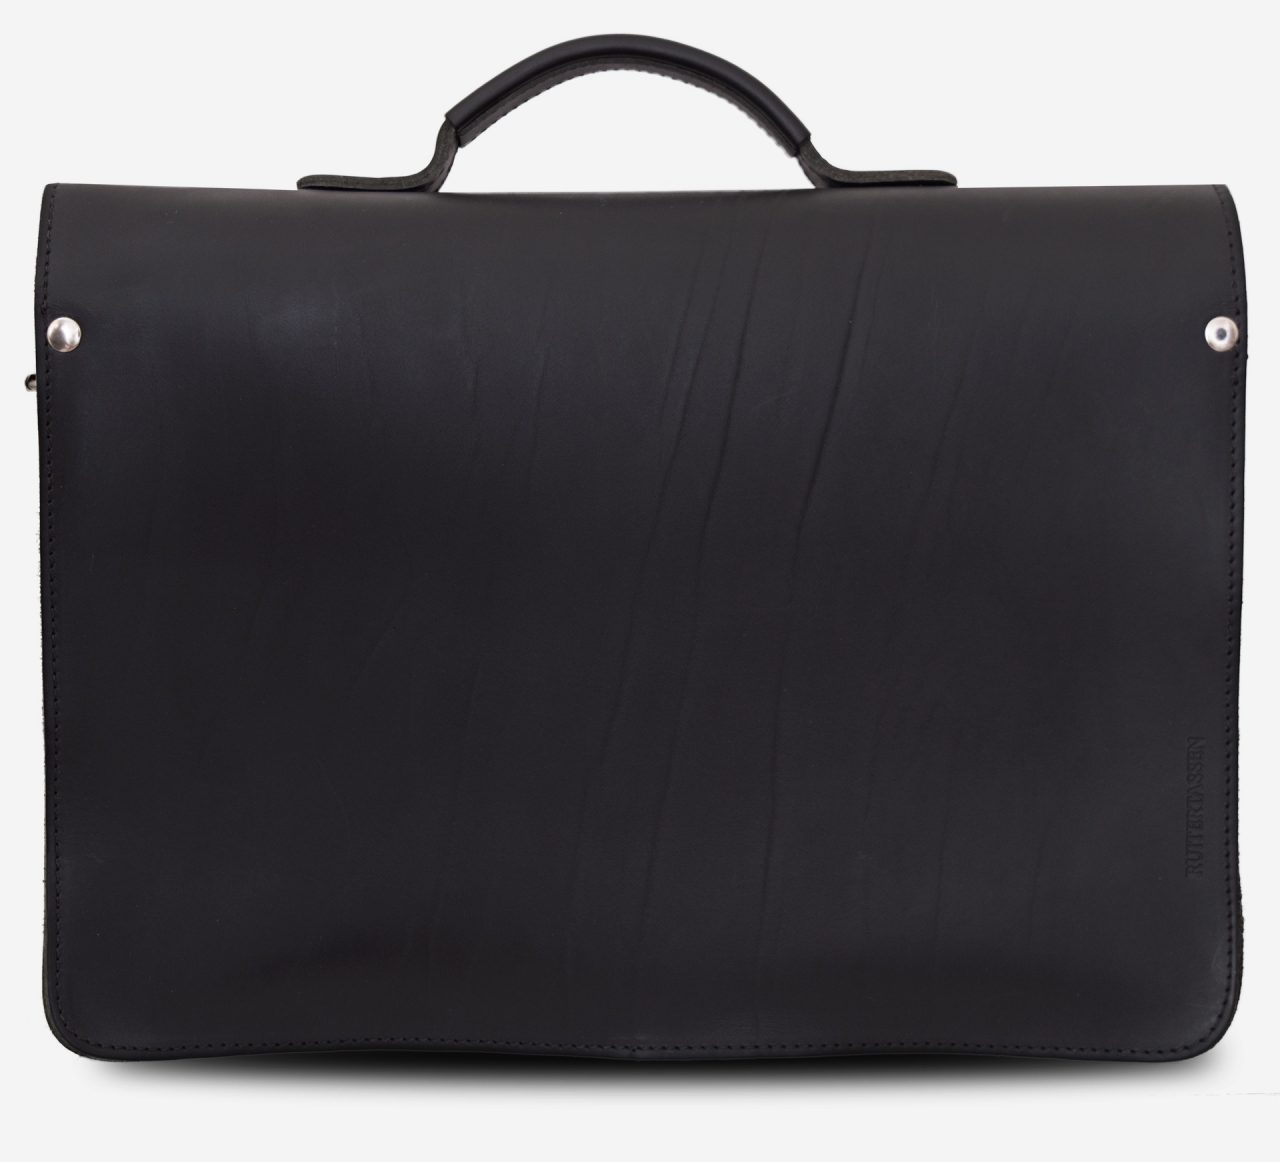 Back view of black leather satchel briefcase with front pockets 112131.